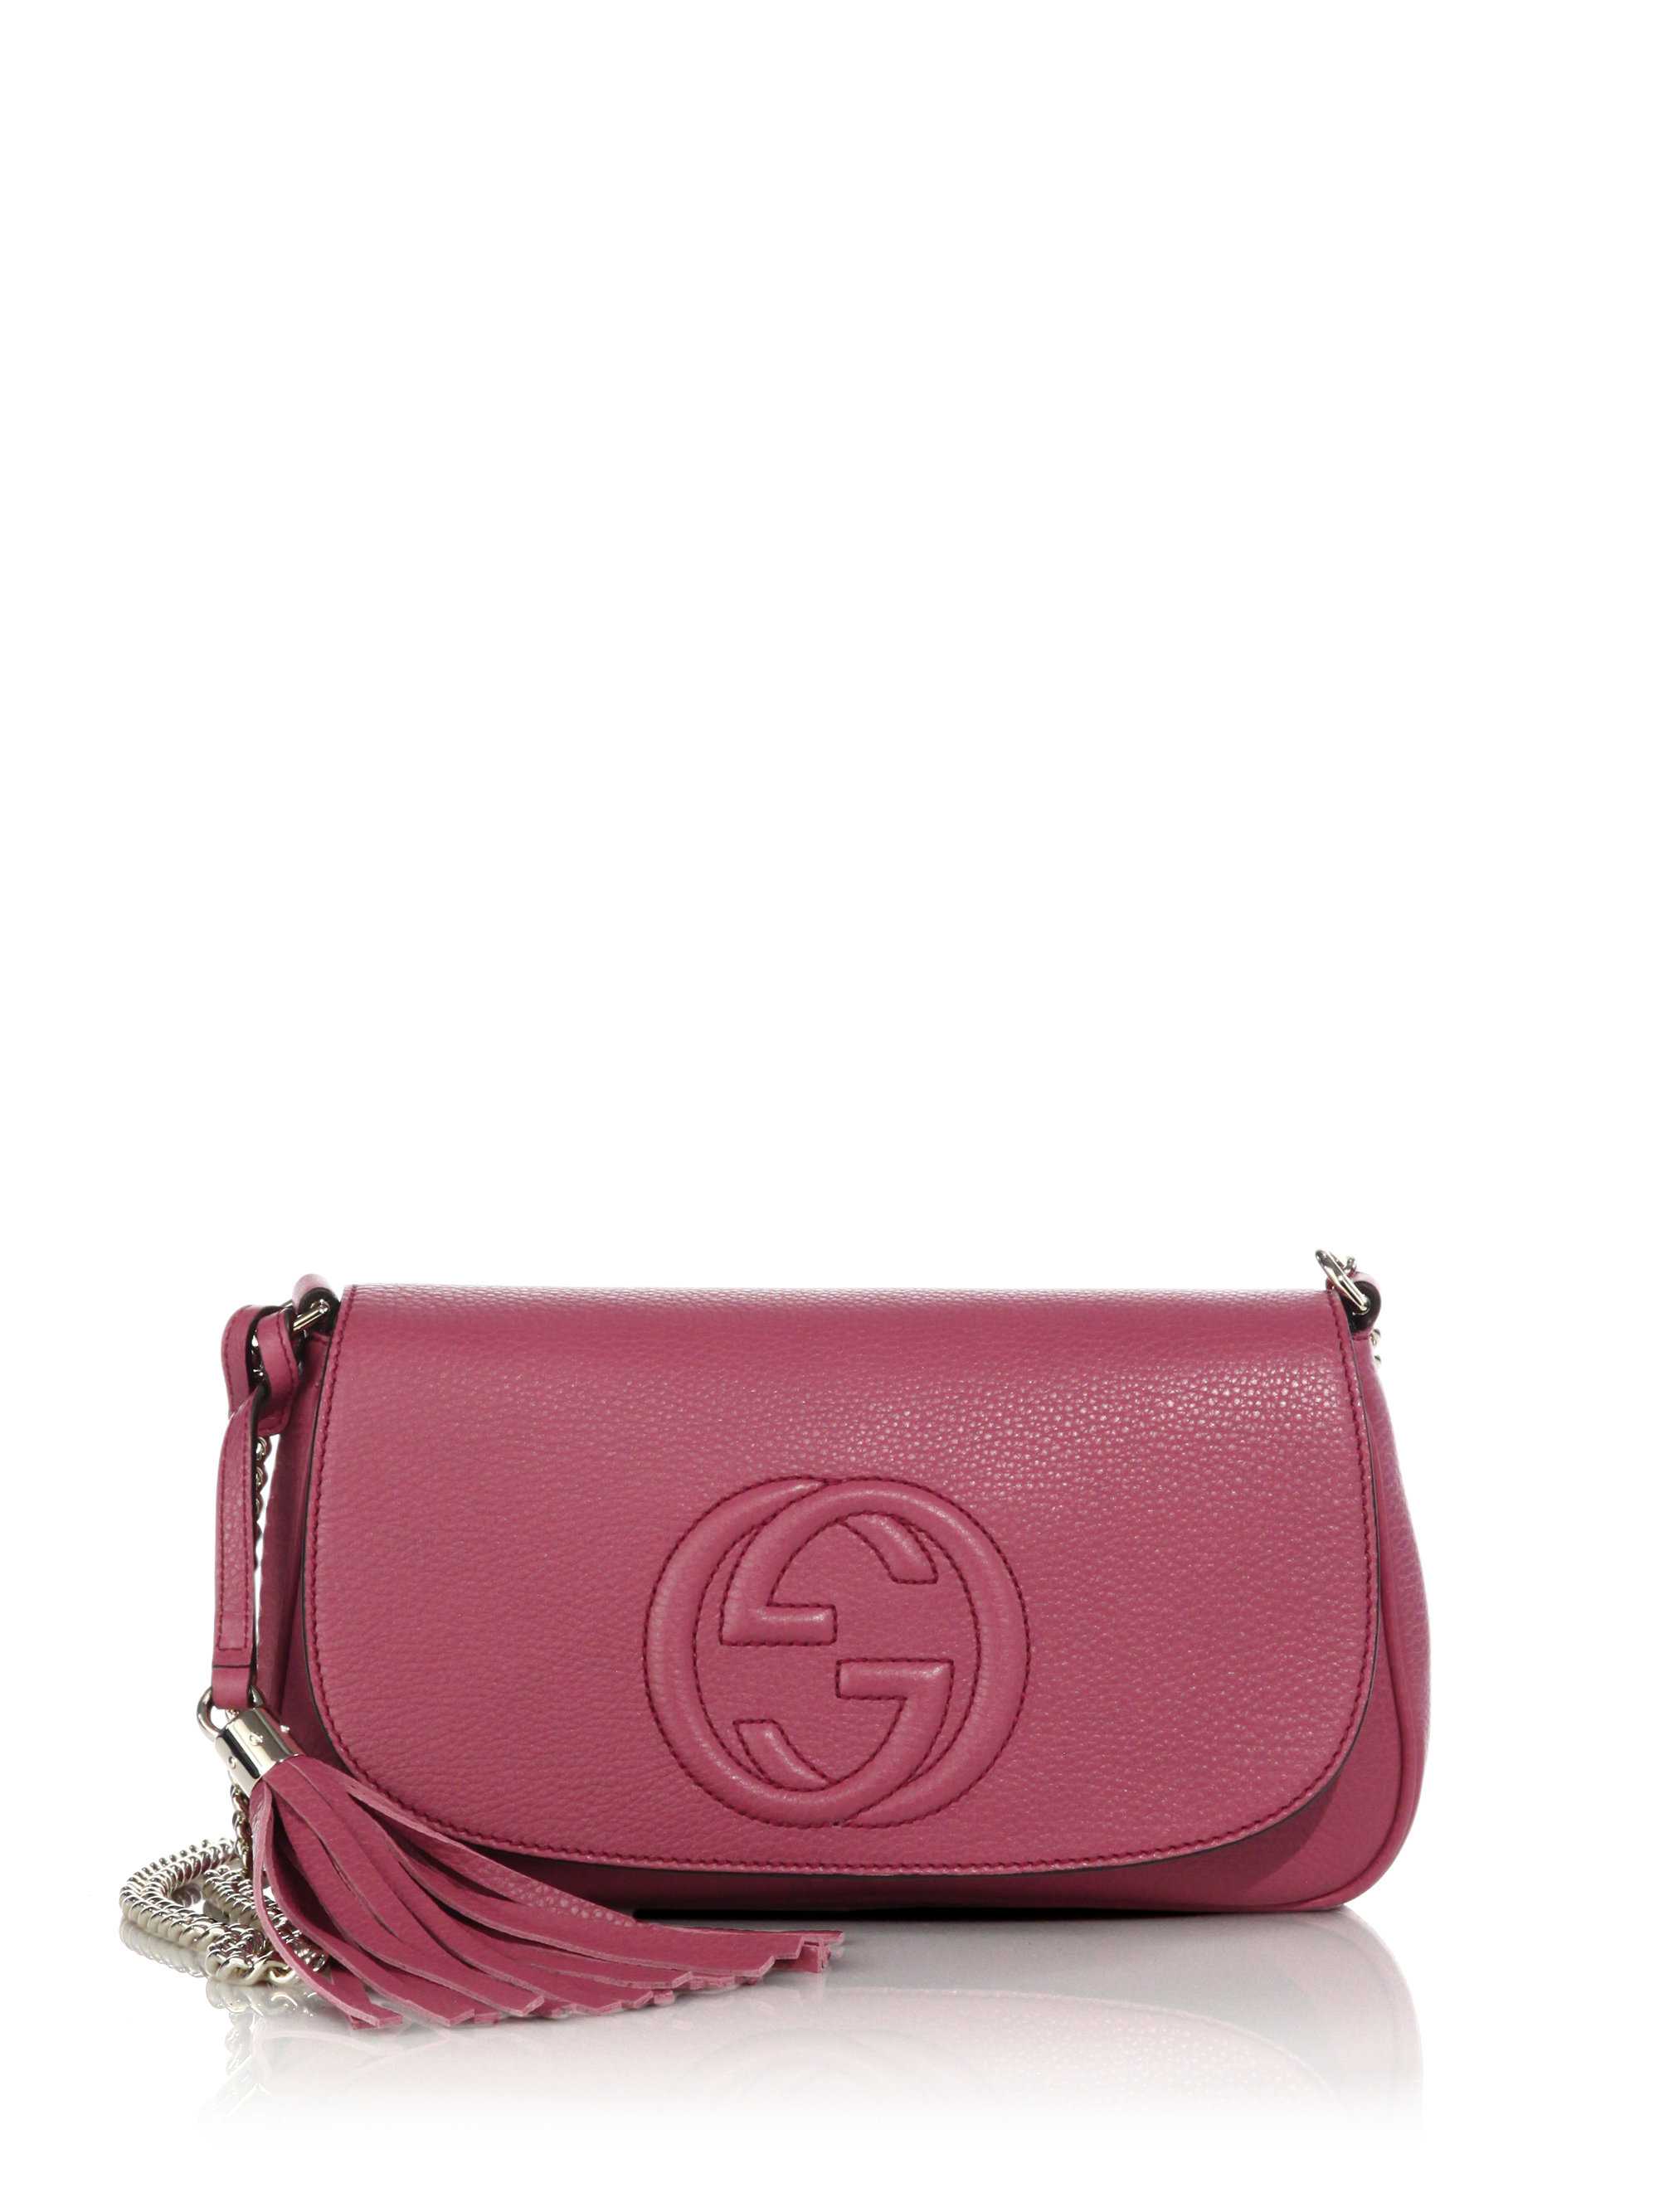 9482371f3721 Lyst - Gucci Soho Leather Shoulder Bag in Purple